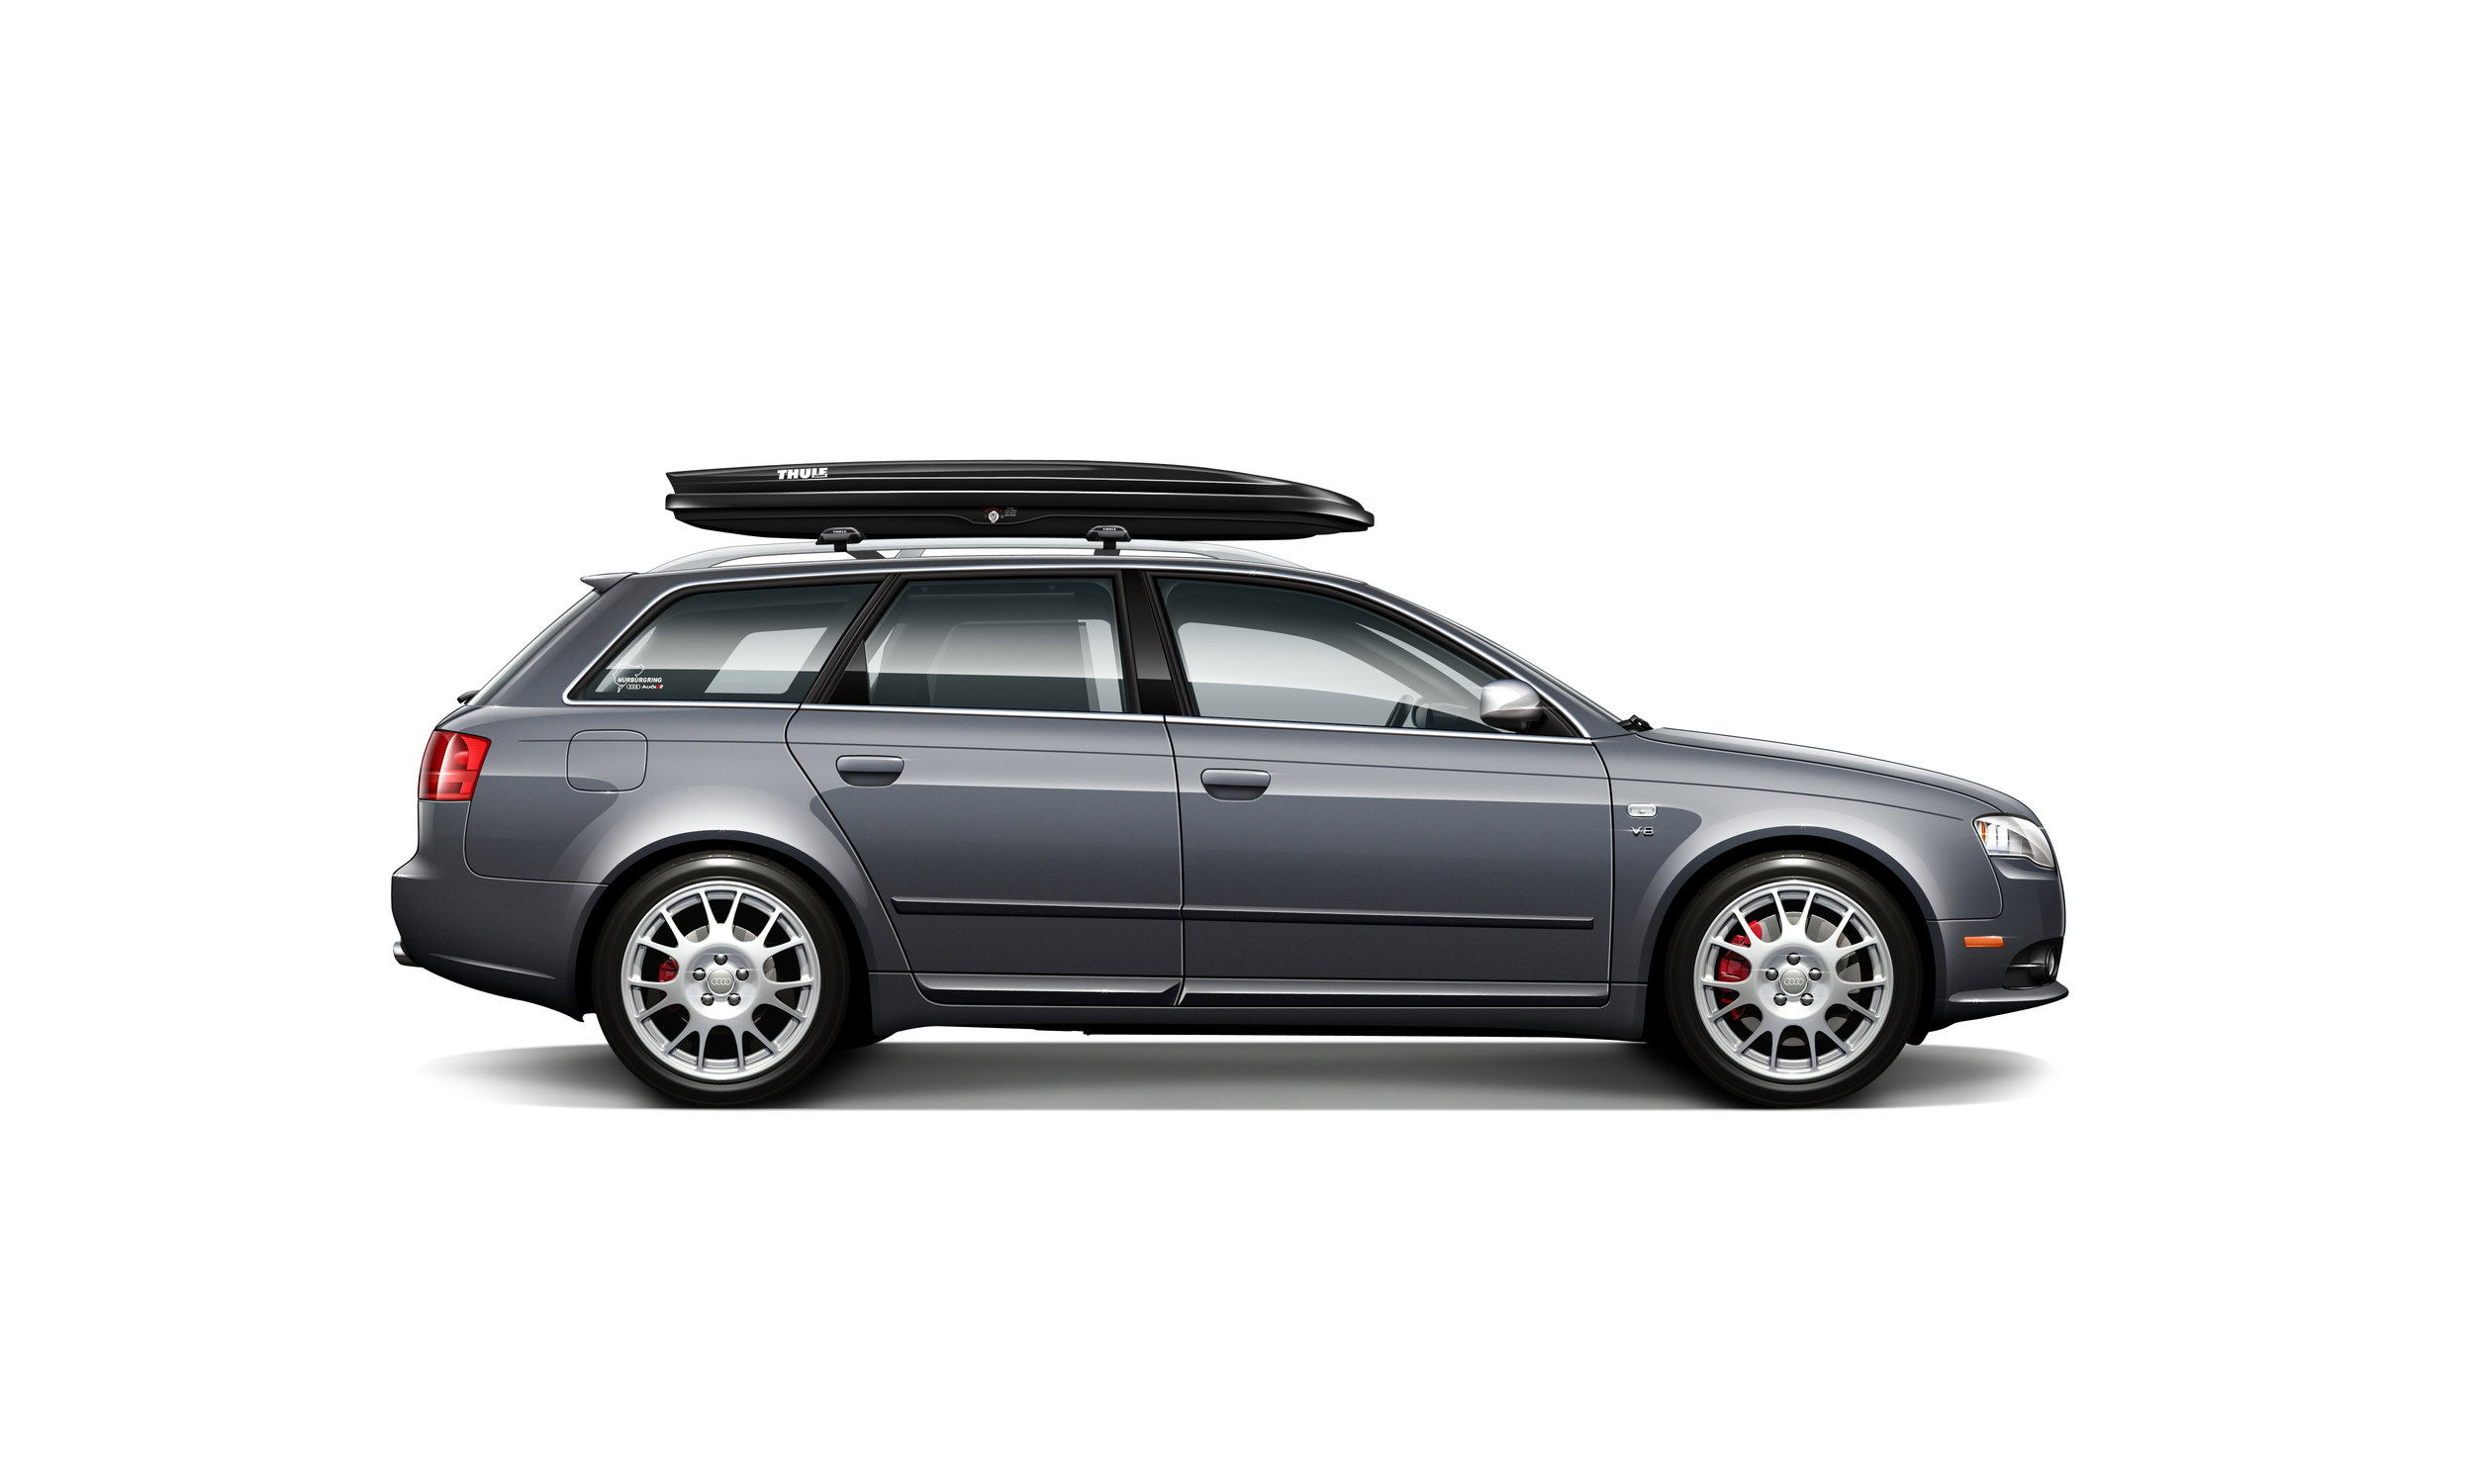 ROOF-RACK NOT ON CAR OR INCLUDED.